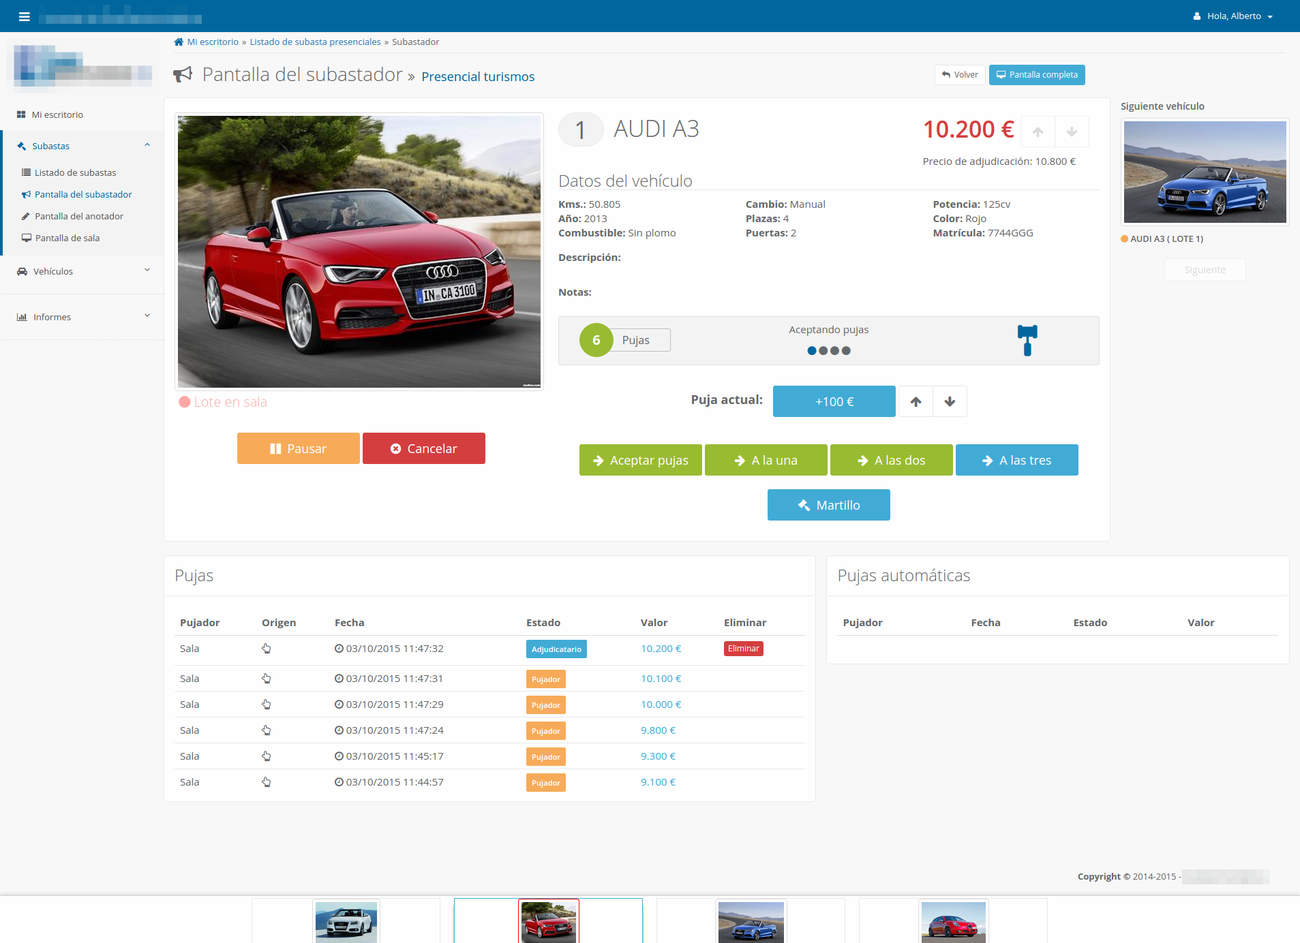 Web application for live onsite and online car auctions